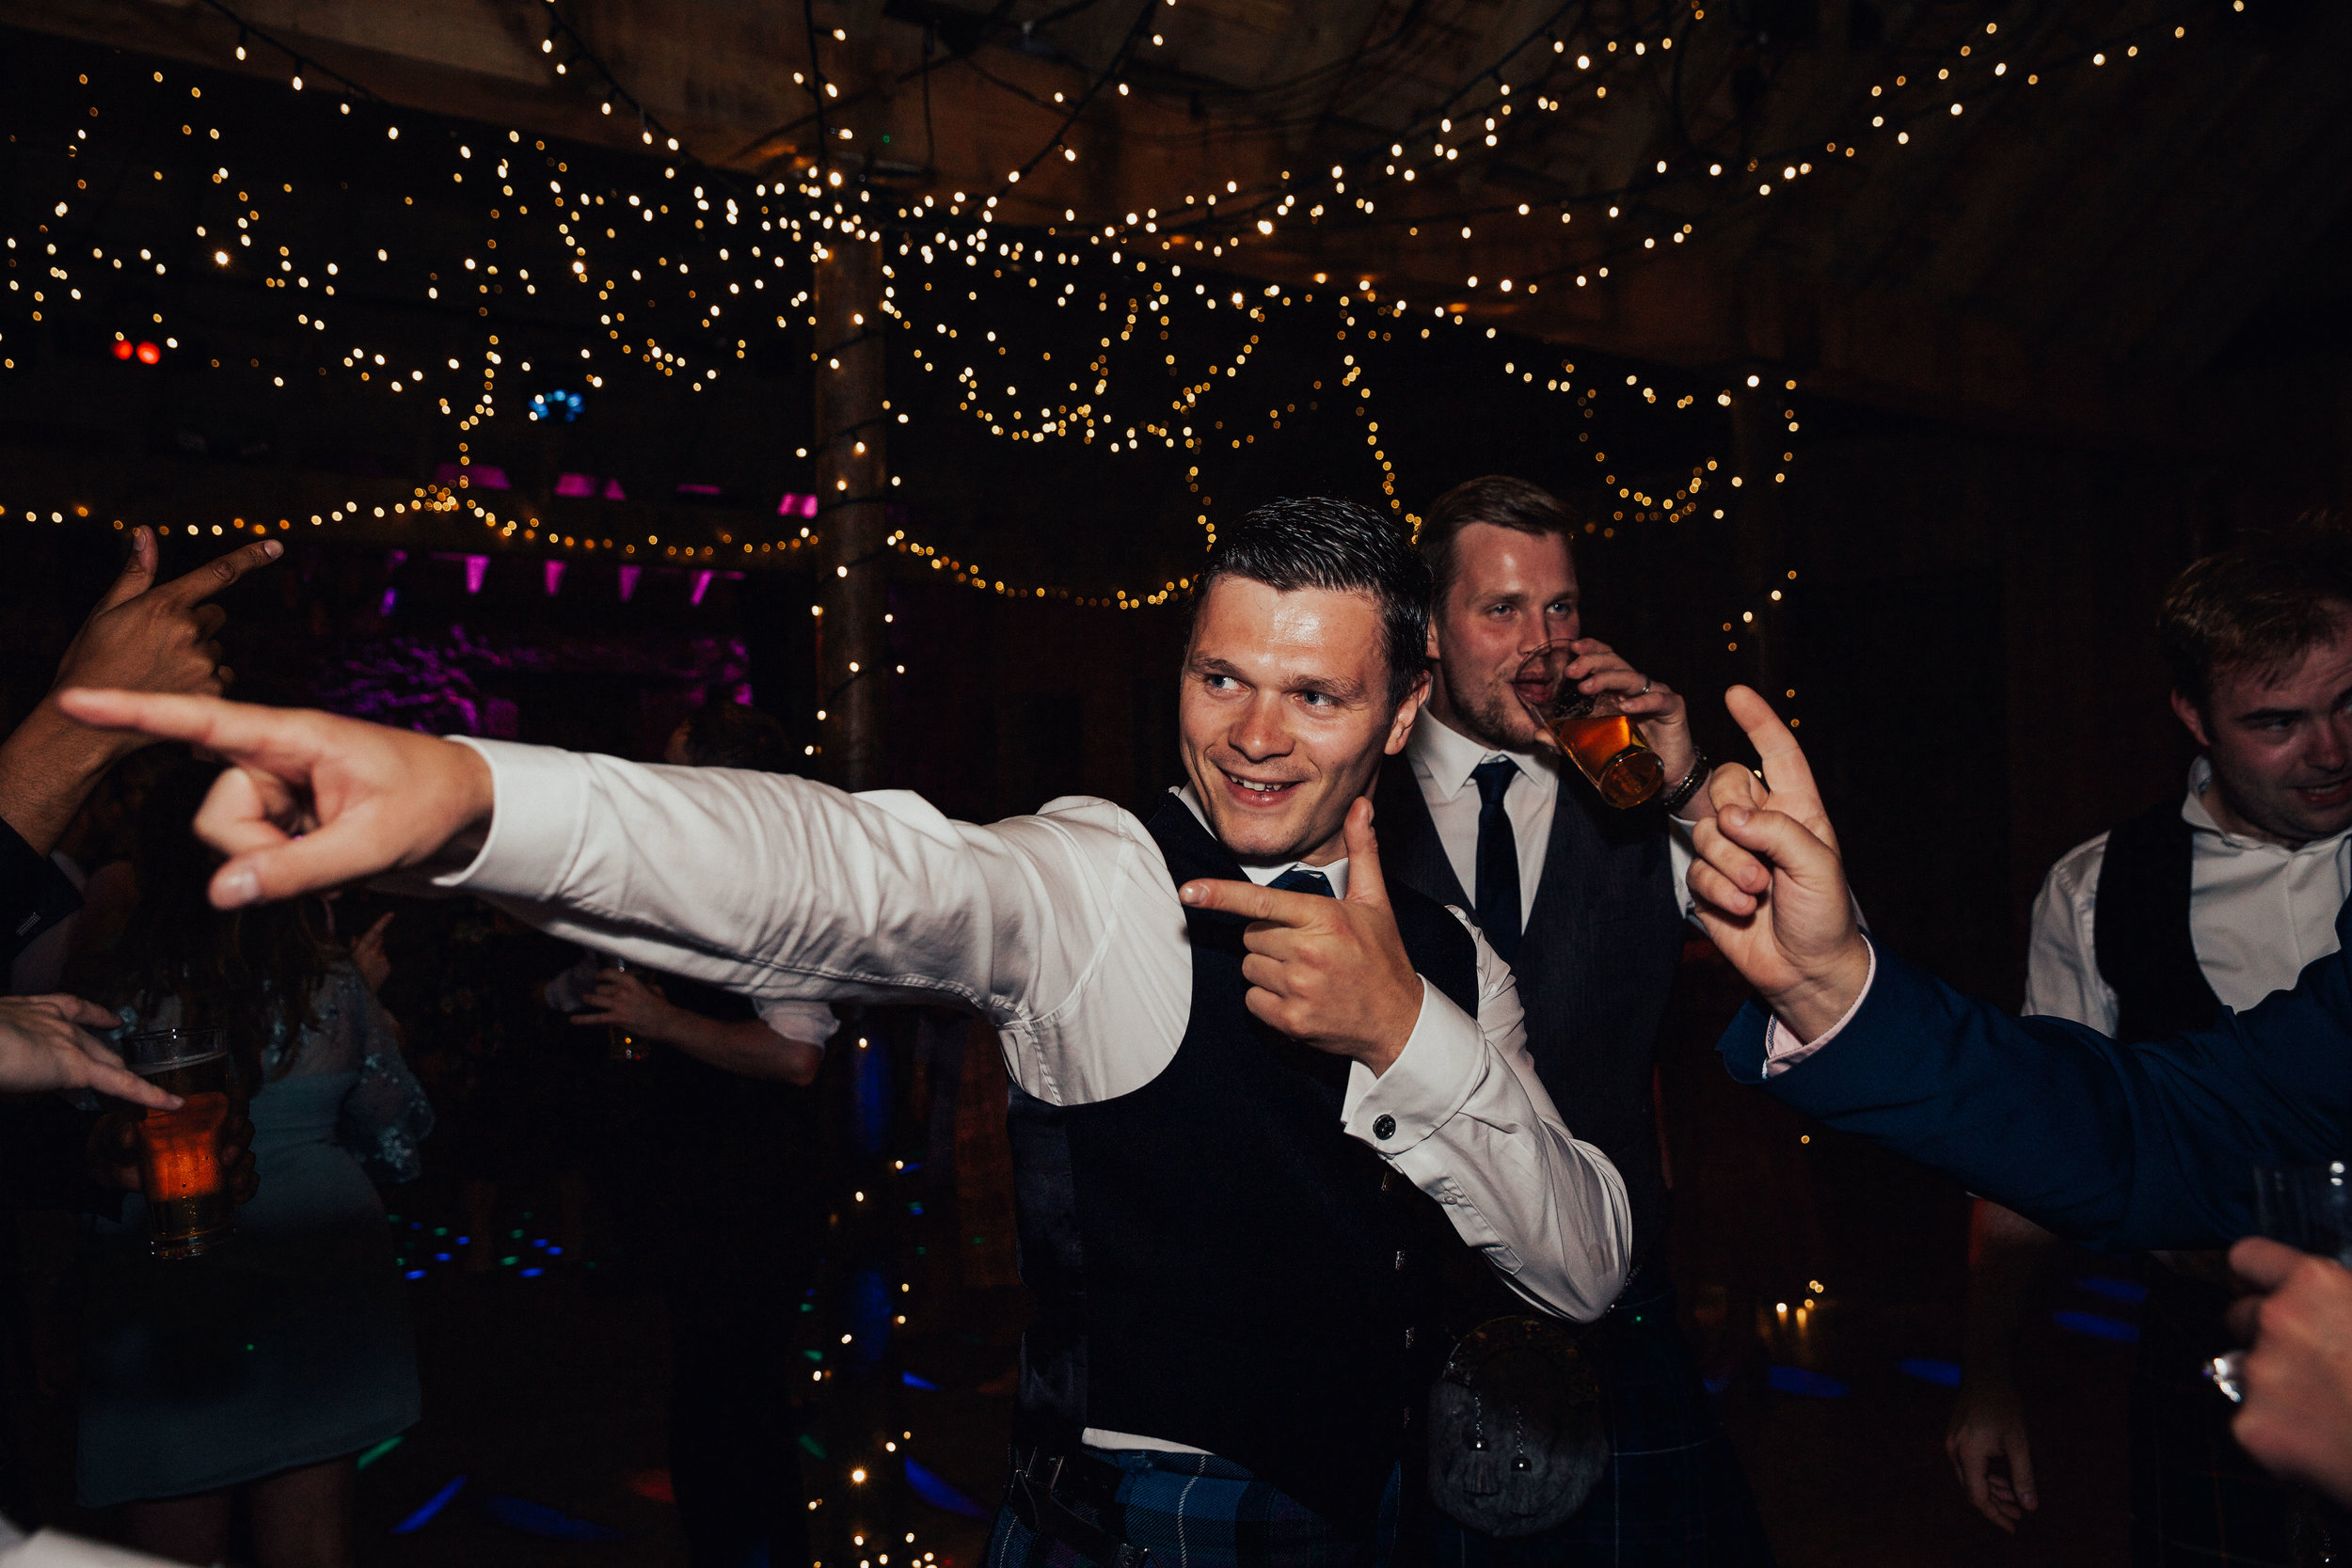 BYRE_AT_INCHYRA_WEDDING_PHOTOGRAPHER_PJ_PHILLIPS_PHOTOGRAPHY_KAYLEIGH_ANDREW_172.jpg